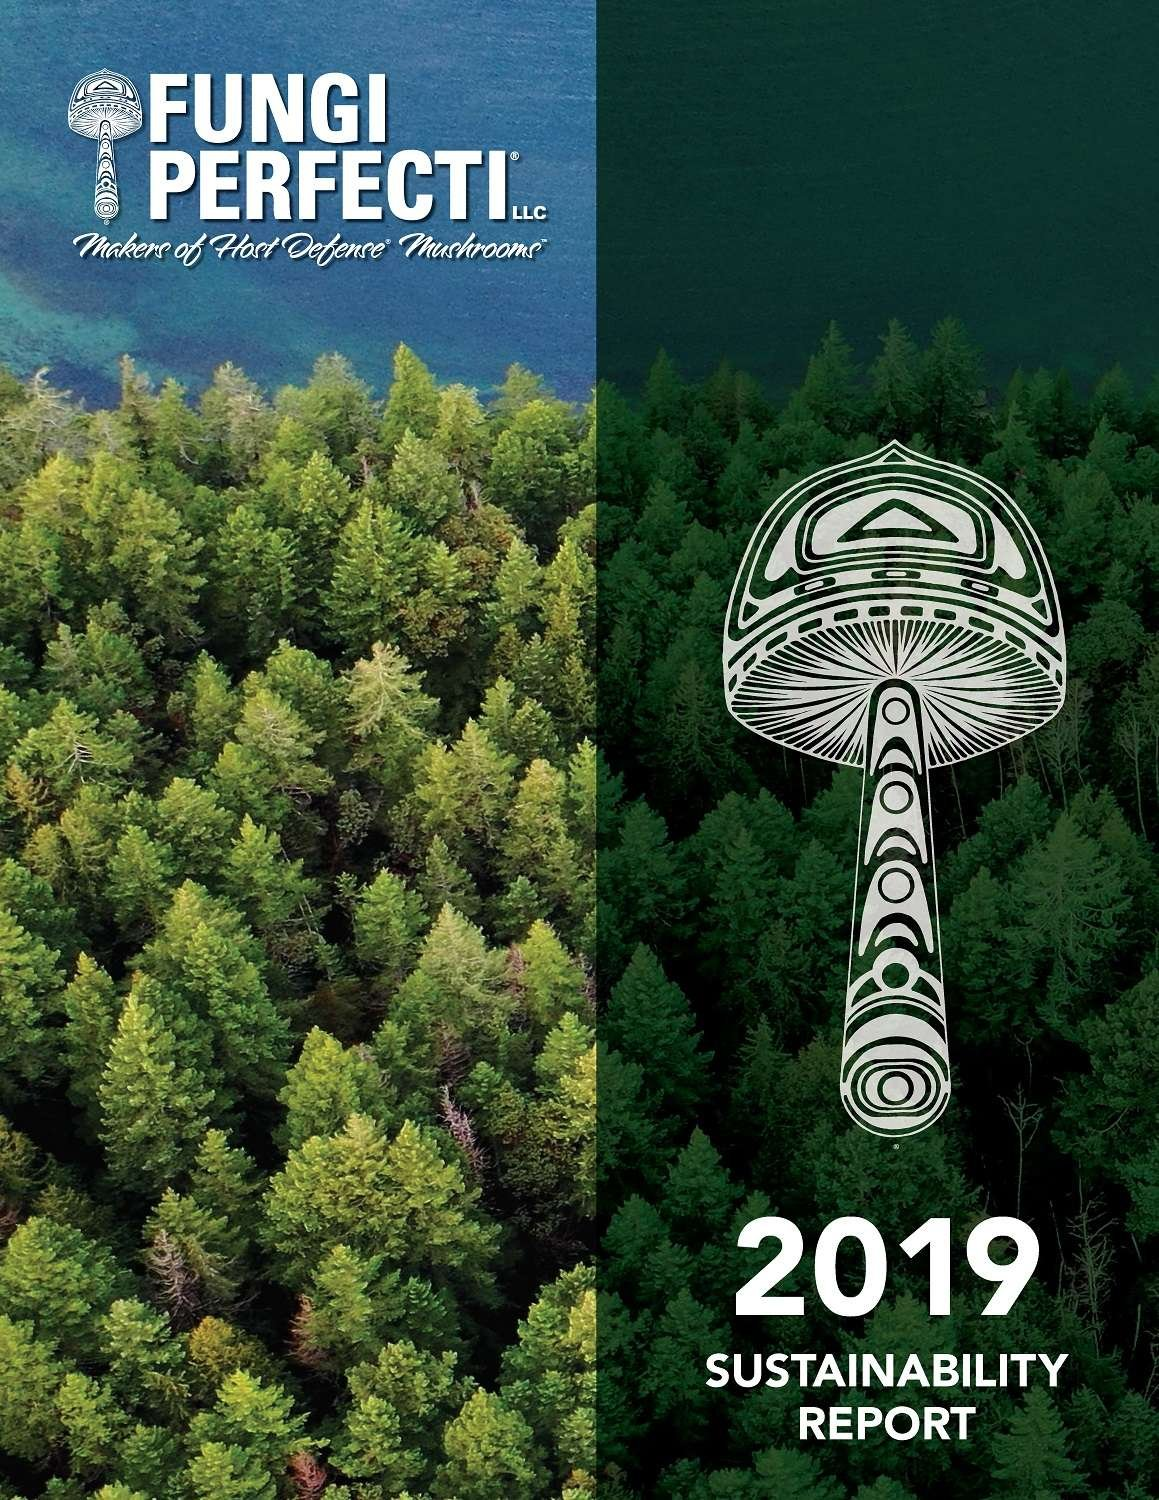 Download the Fungi Perfecti 2019 Sustainability Report